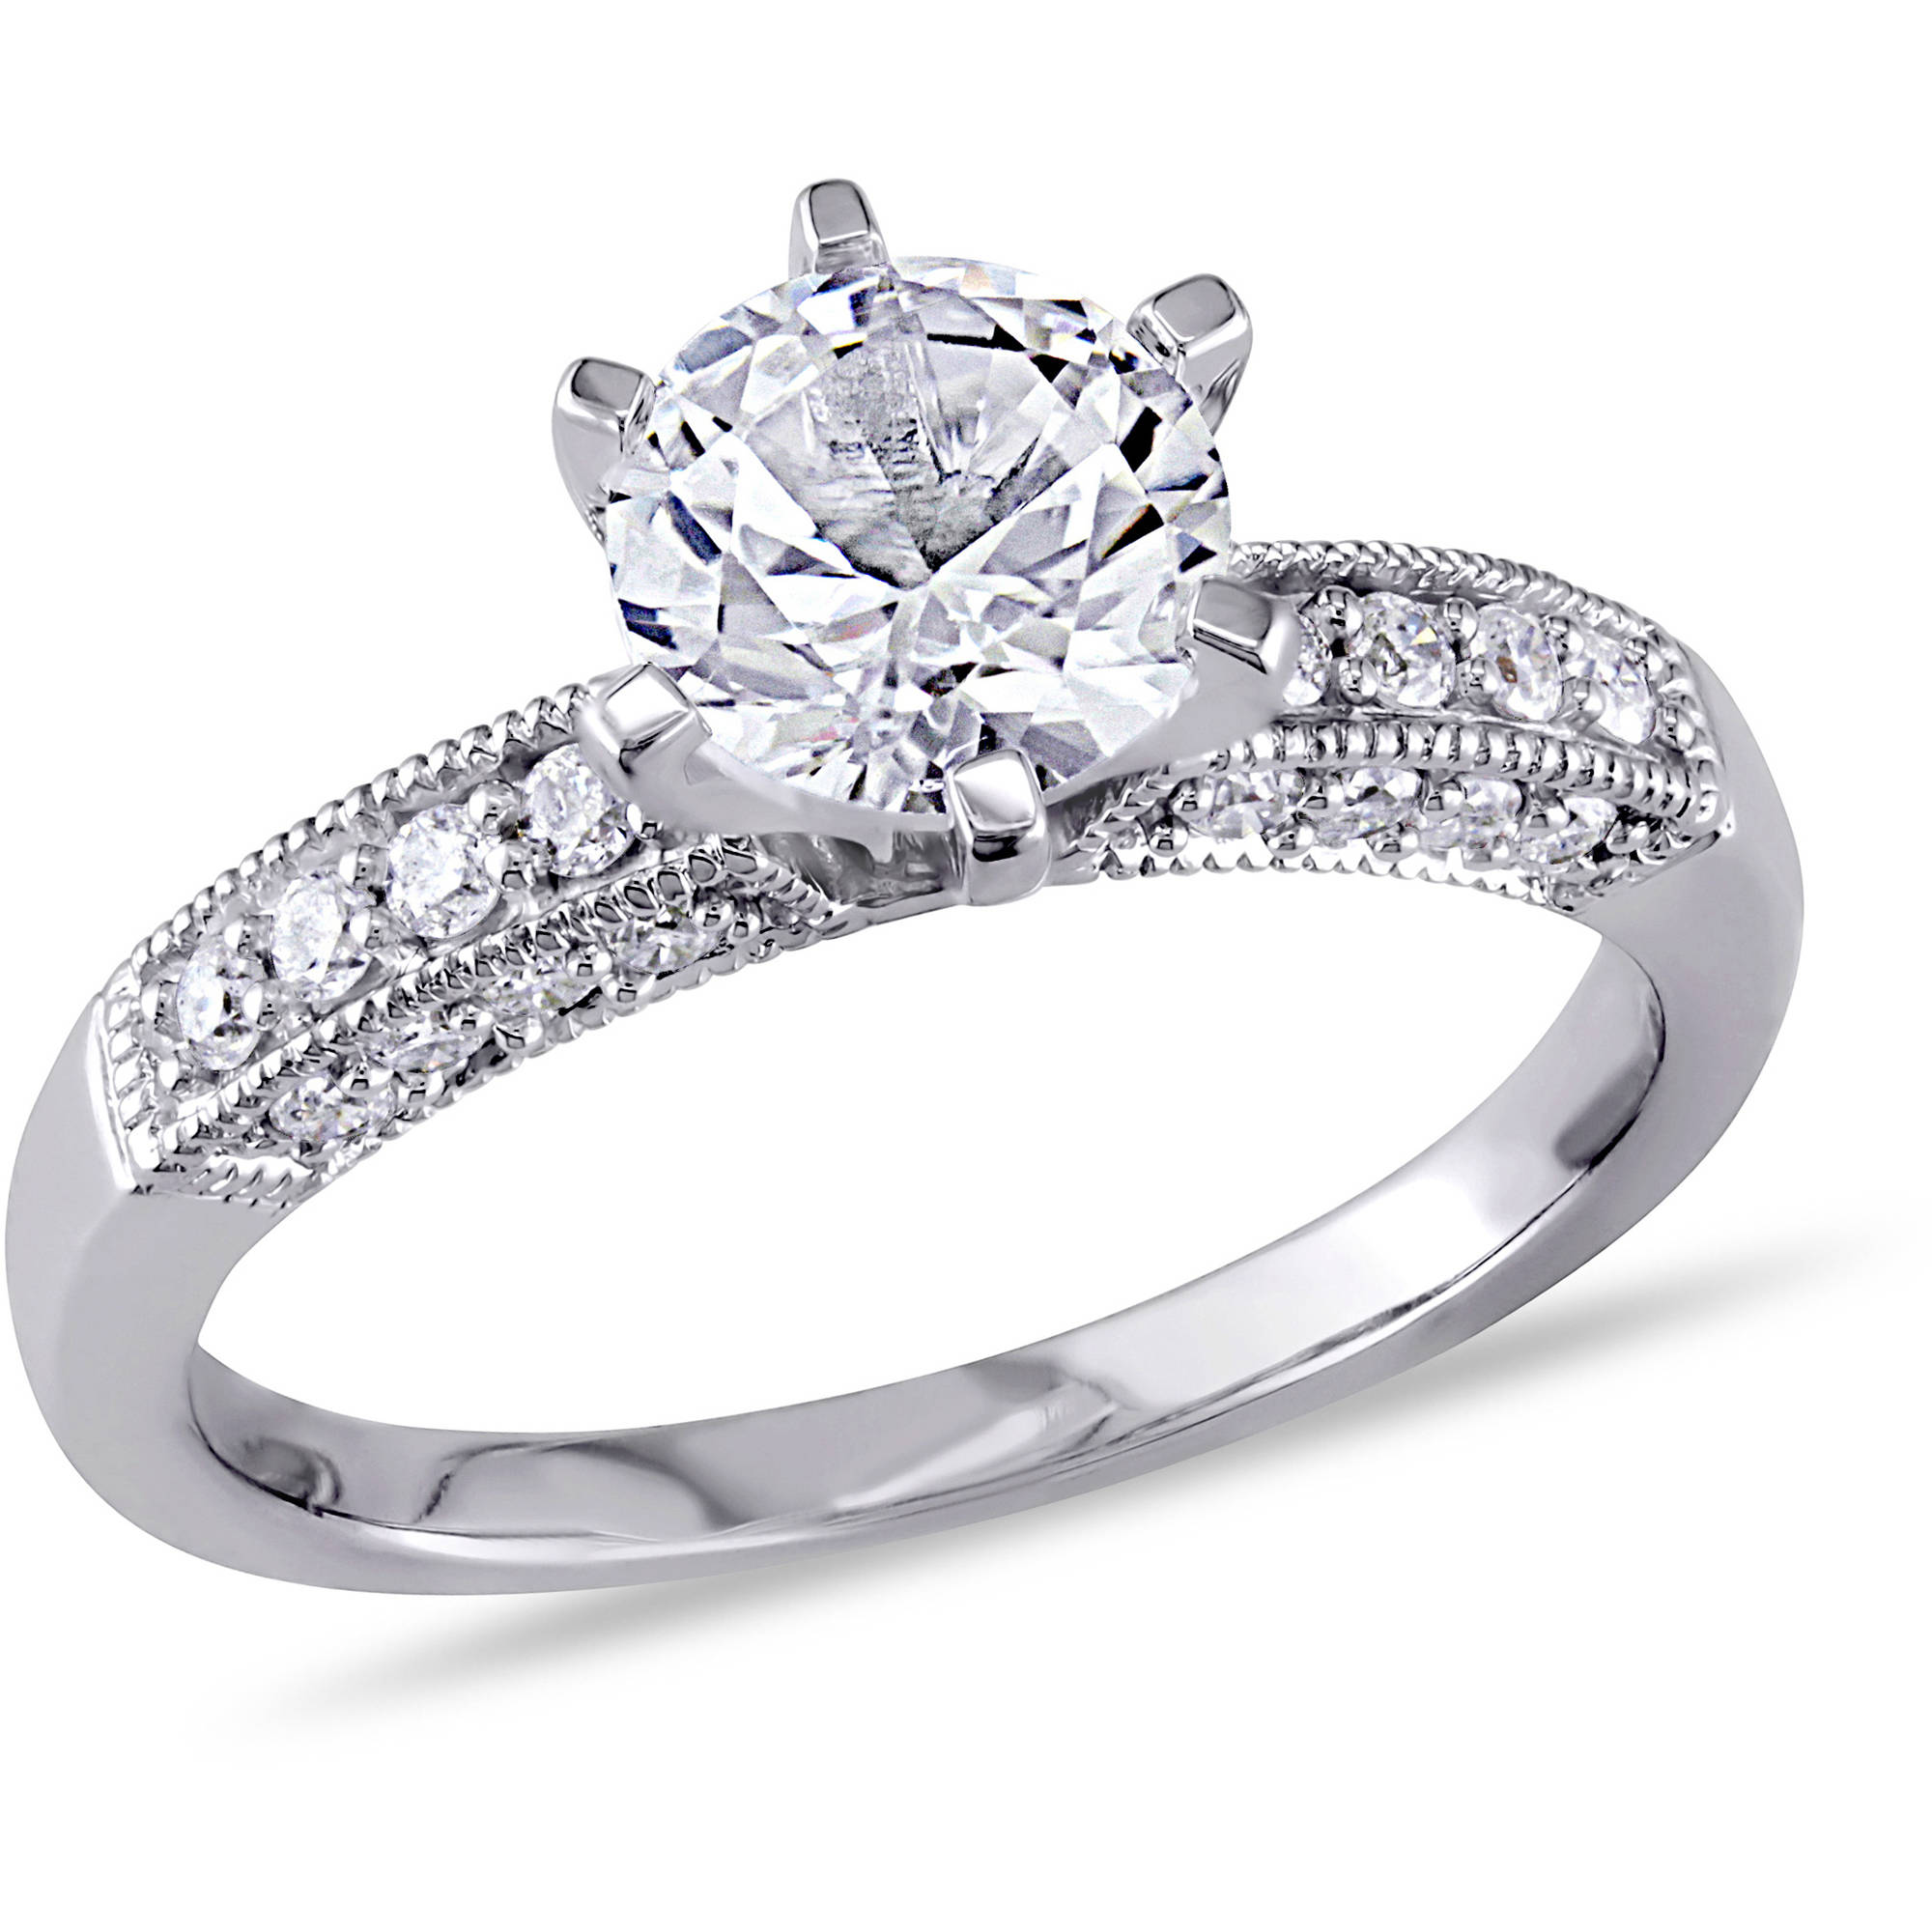 on hand lovely ring finger elegant engagement of rings wedding diamond carat